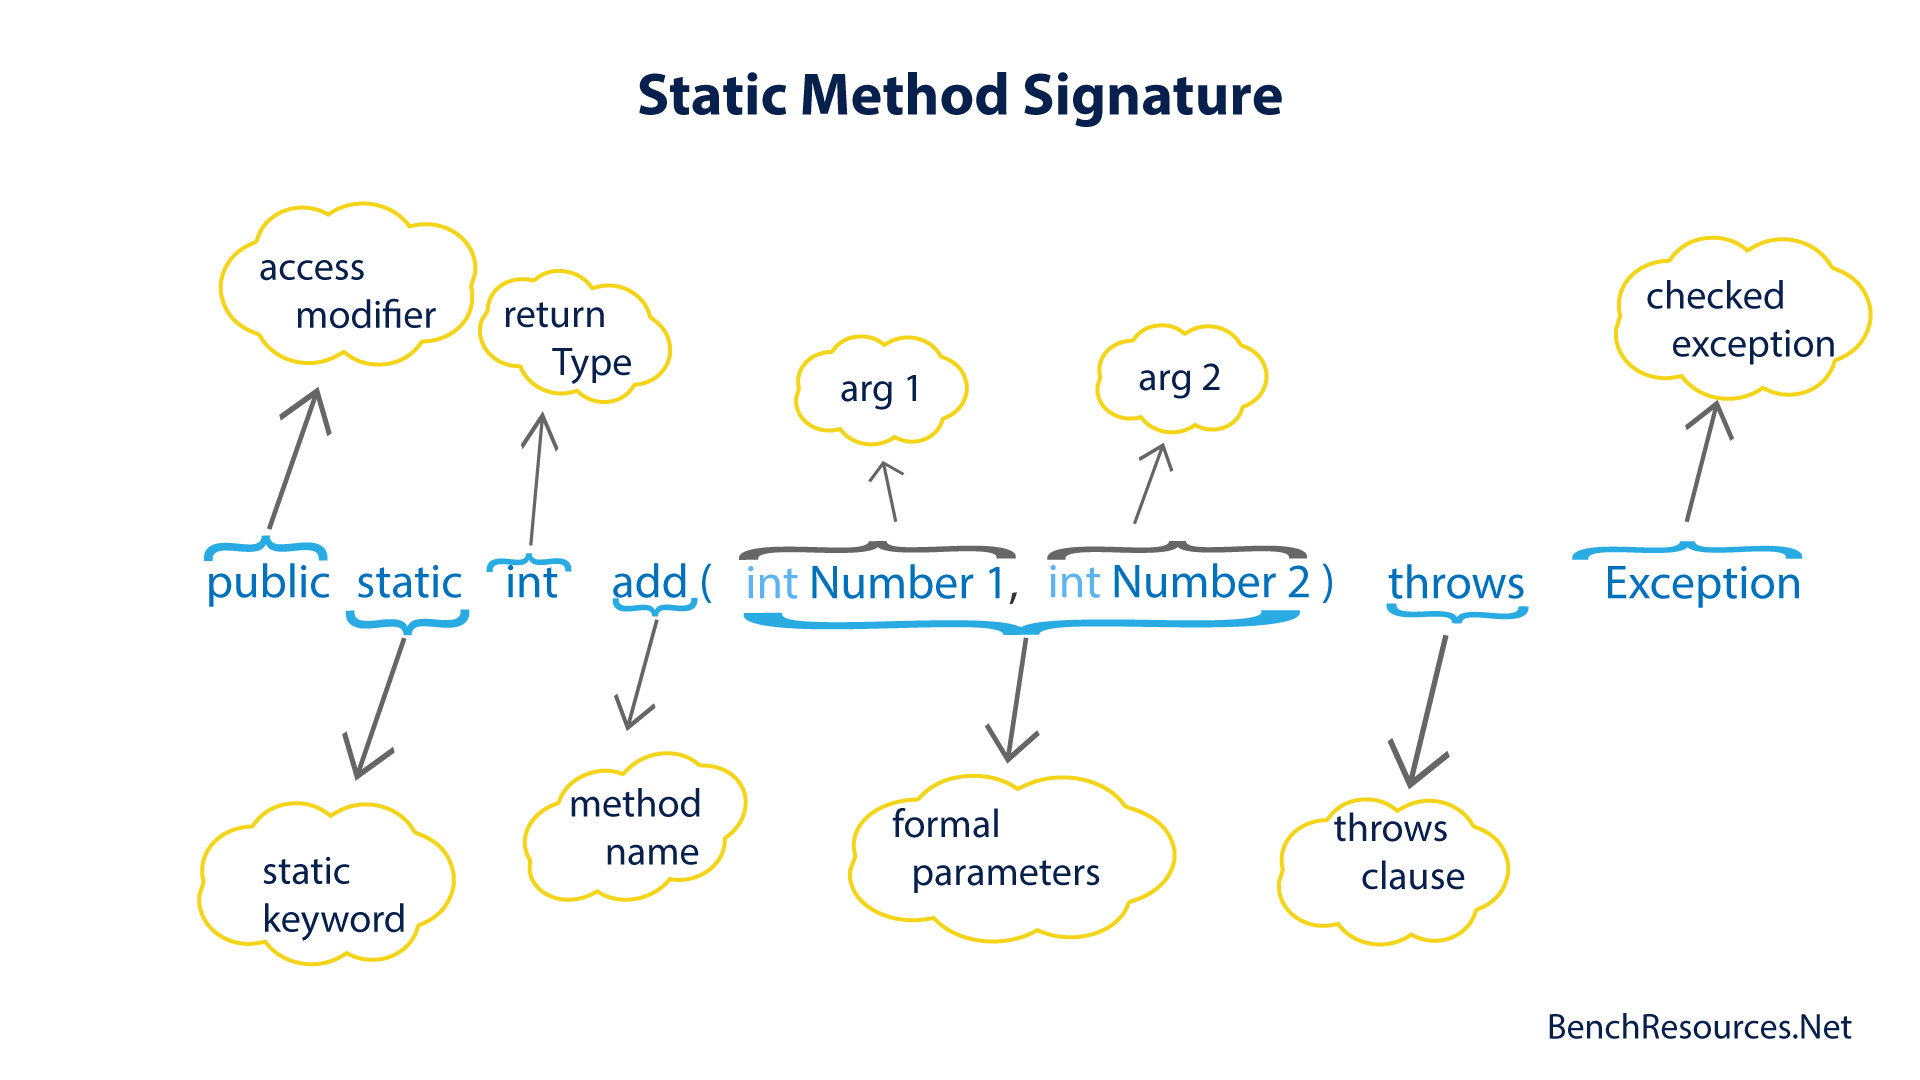 2_Method_Overloading_Static_Method_Signature